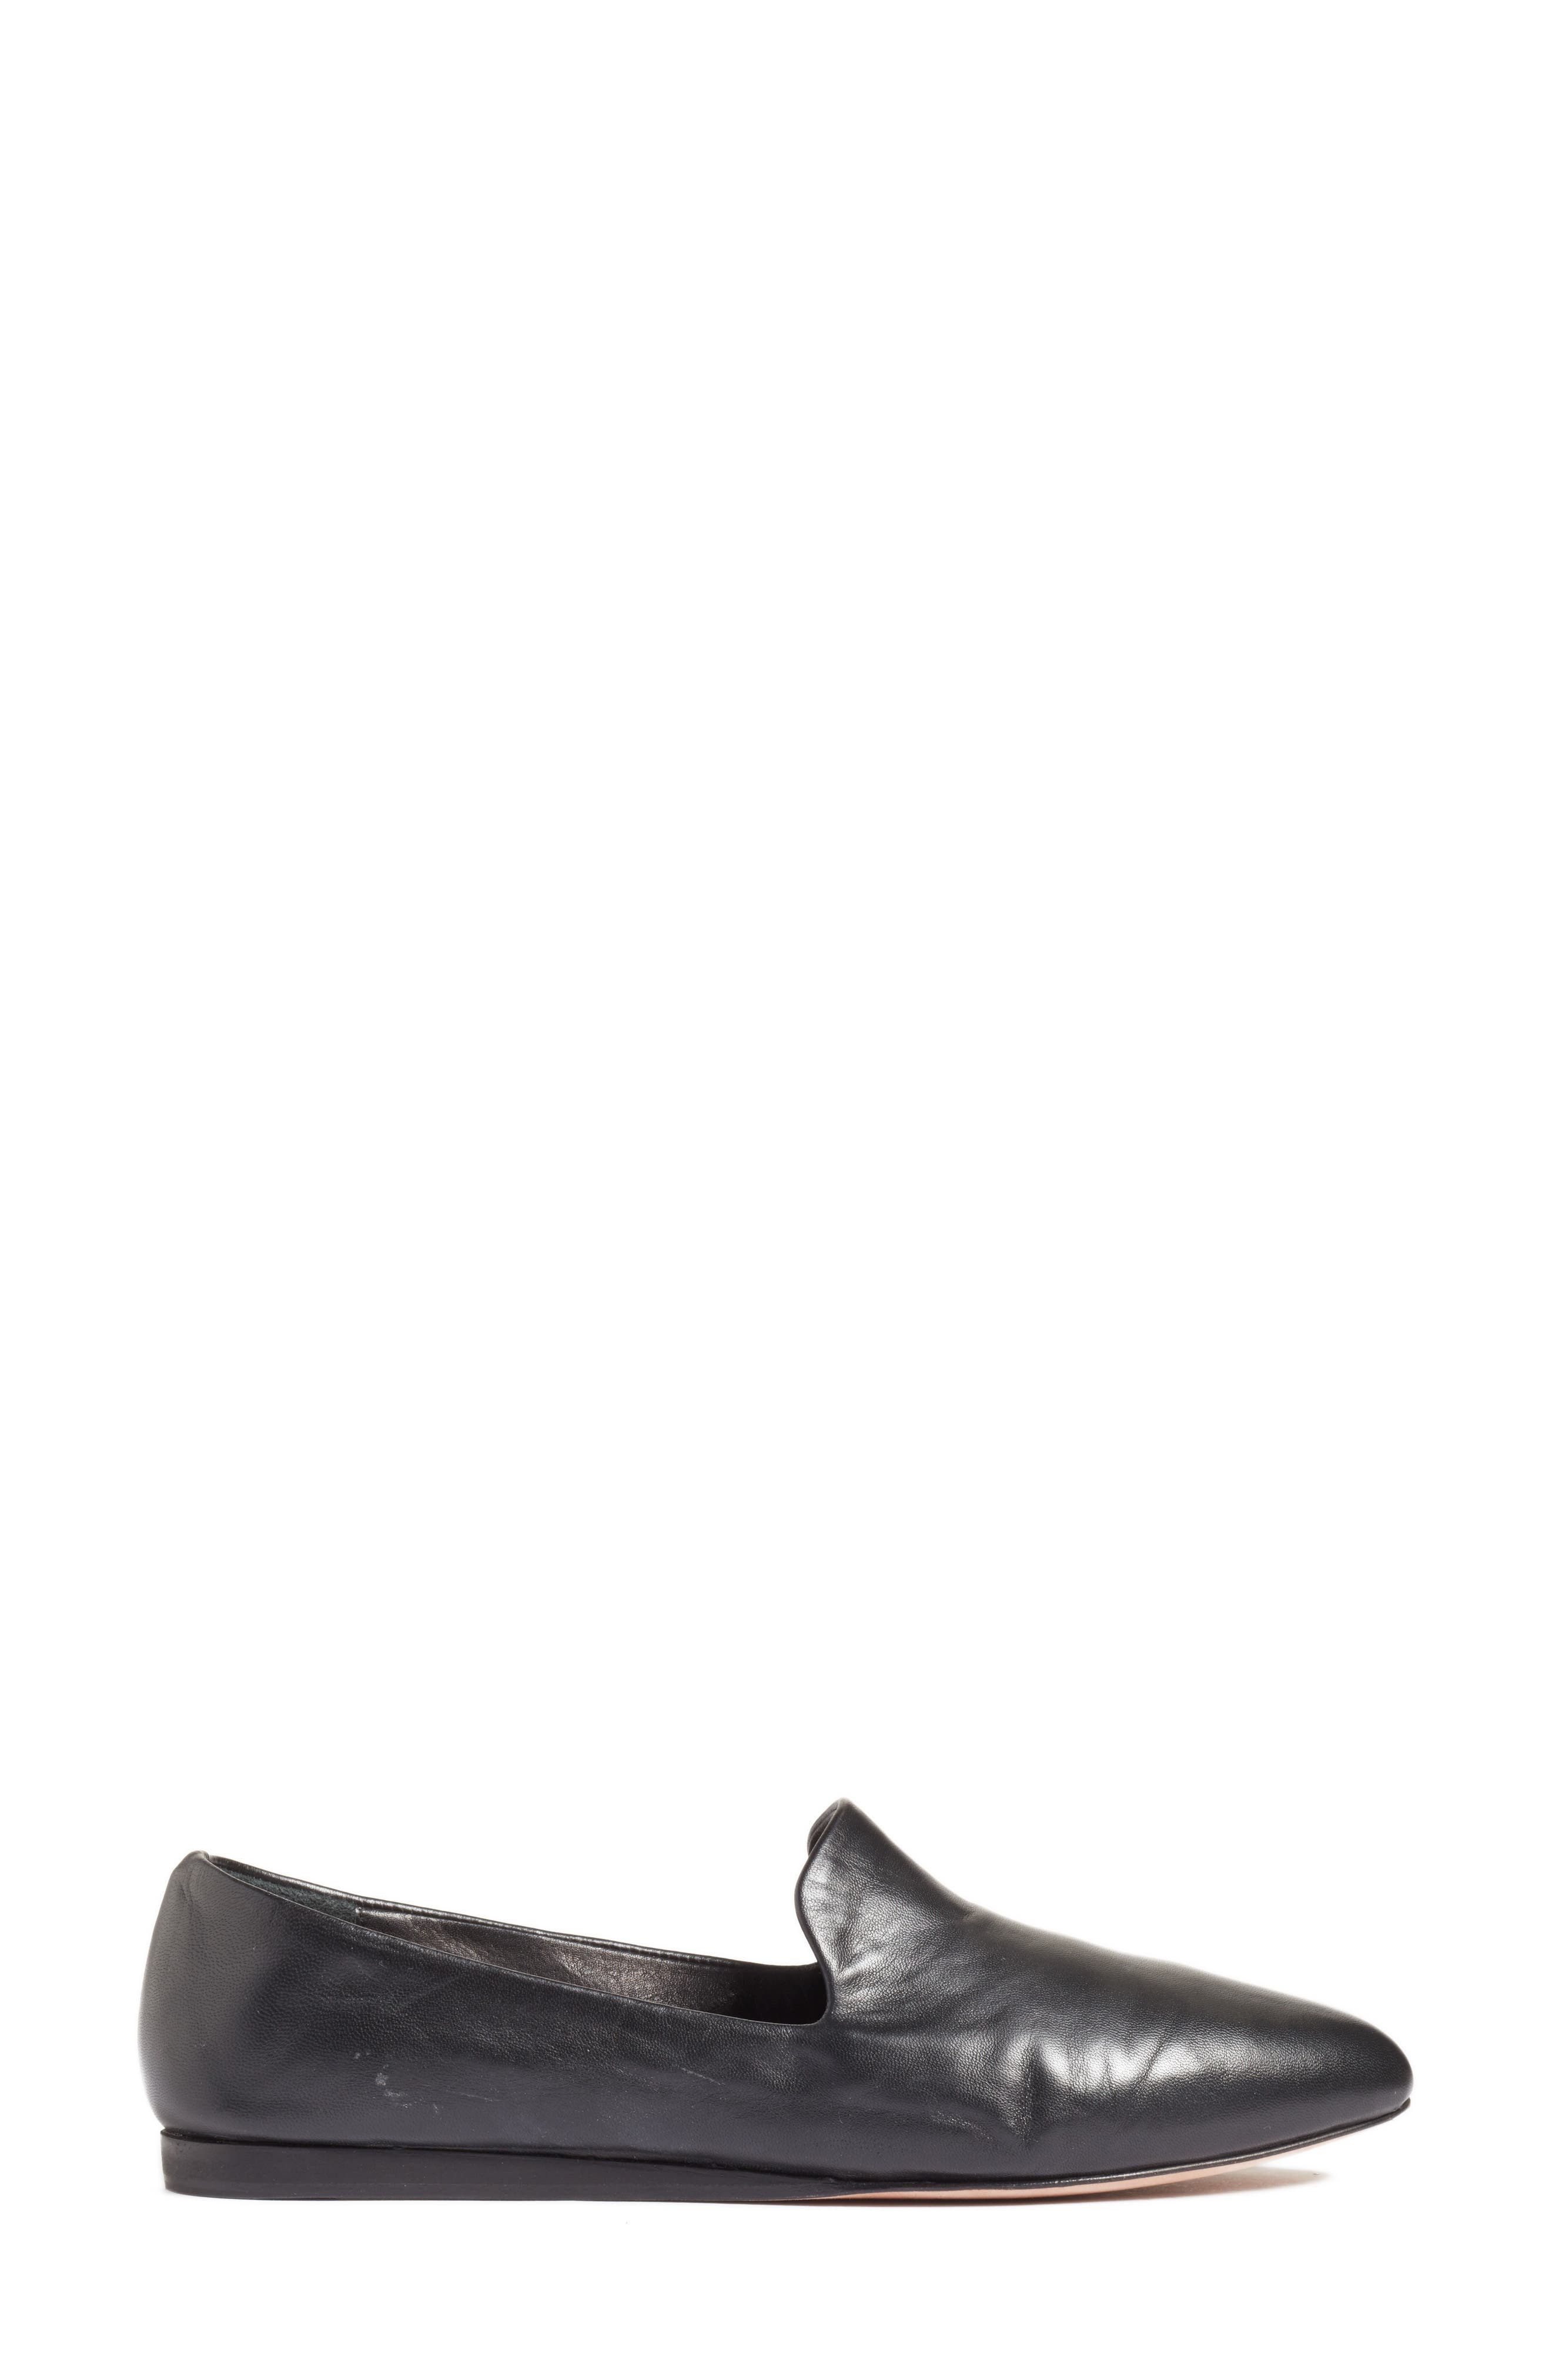 Griffin Pointy Toe Loafer,                             Alternate thumbnail 3, color,                             001